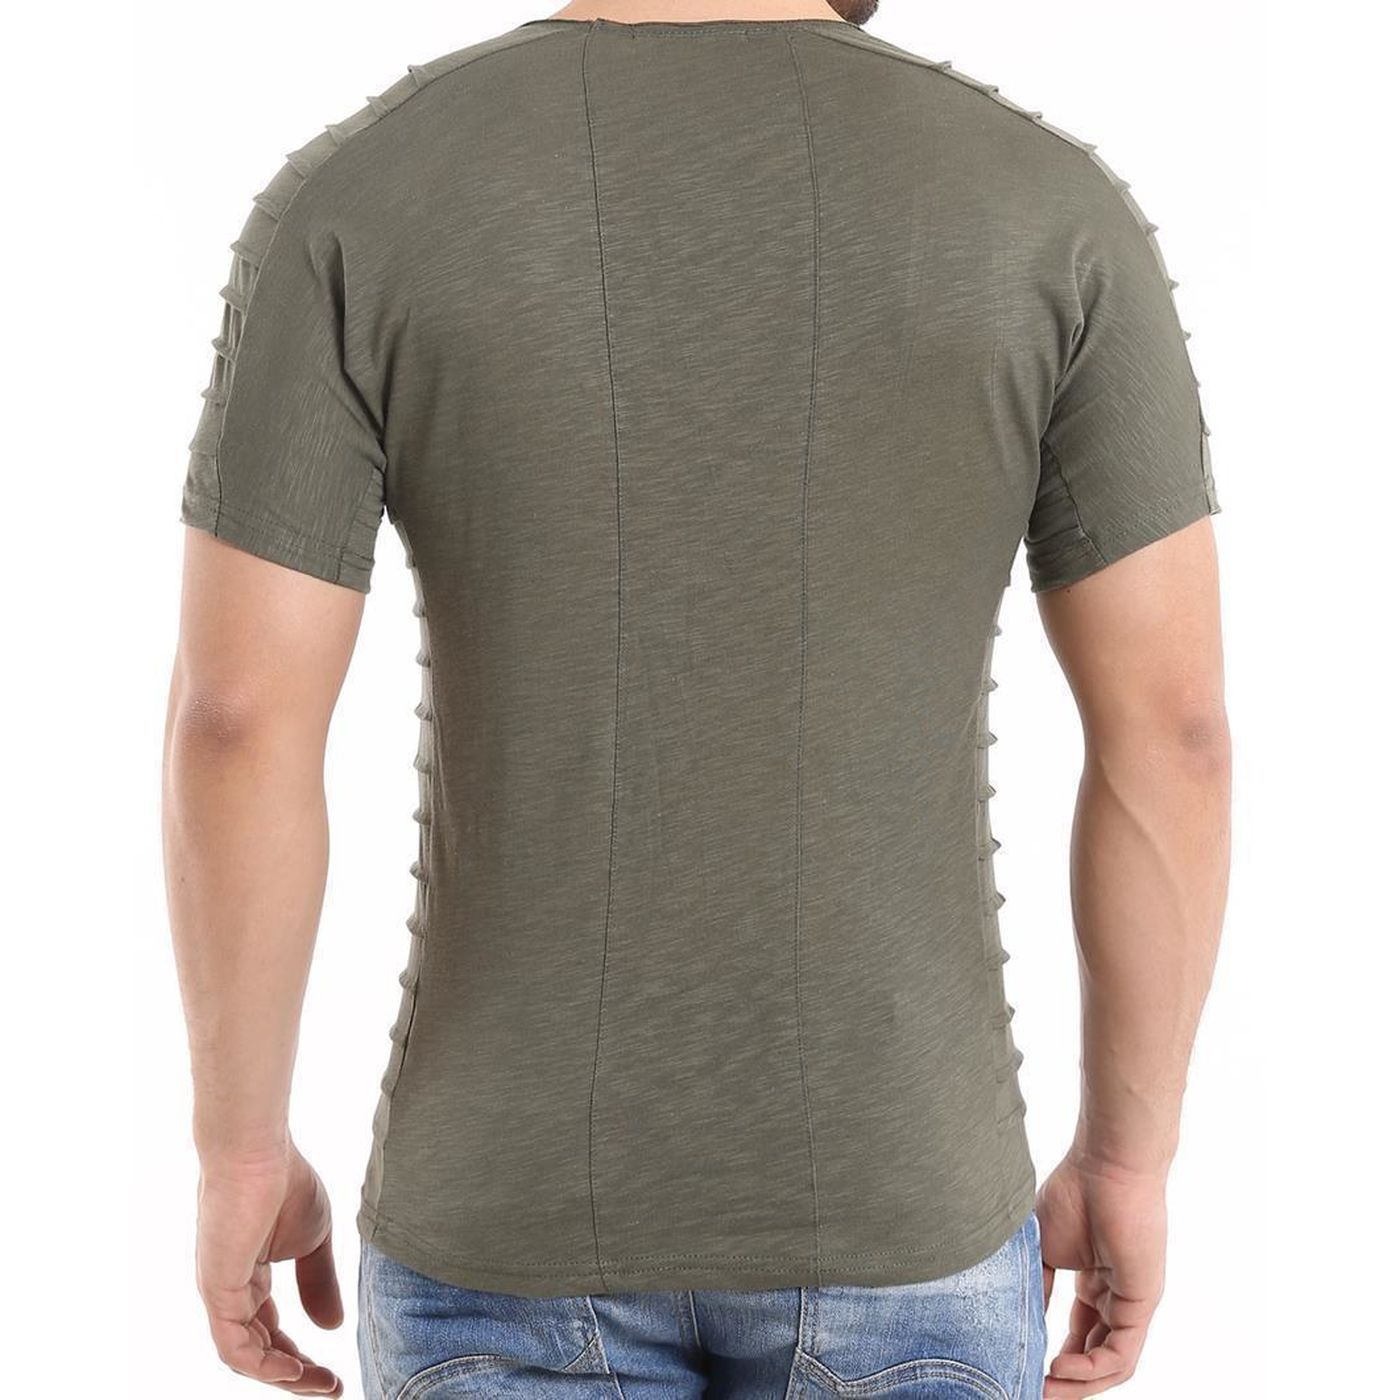 c547b7d56e32d8 Red Bridge Herren T-Shirt folded motiv RBC Band kurzarm Shirt Khaki Green